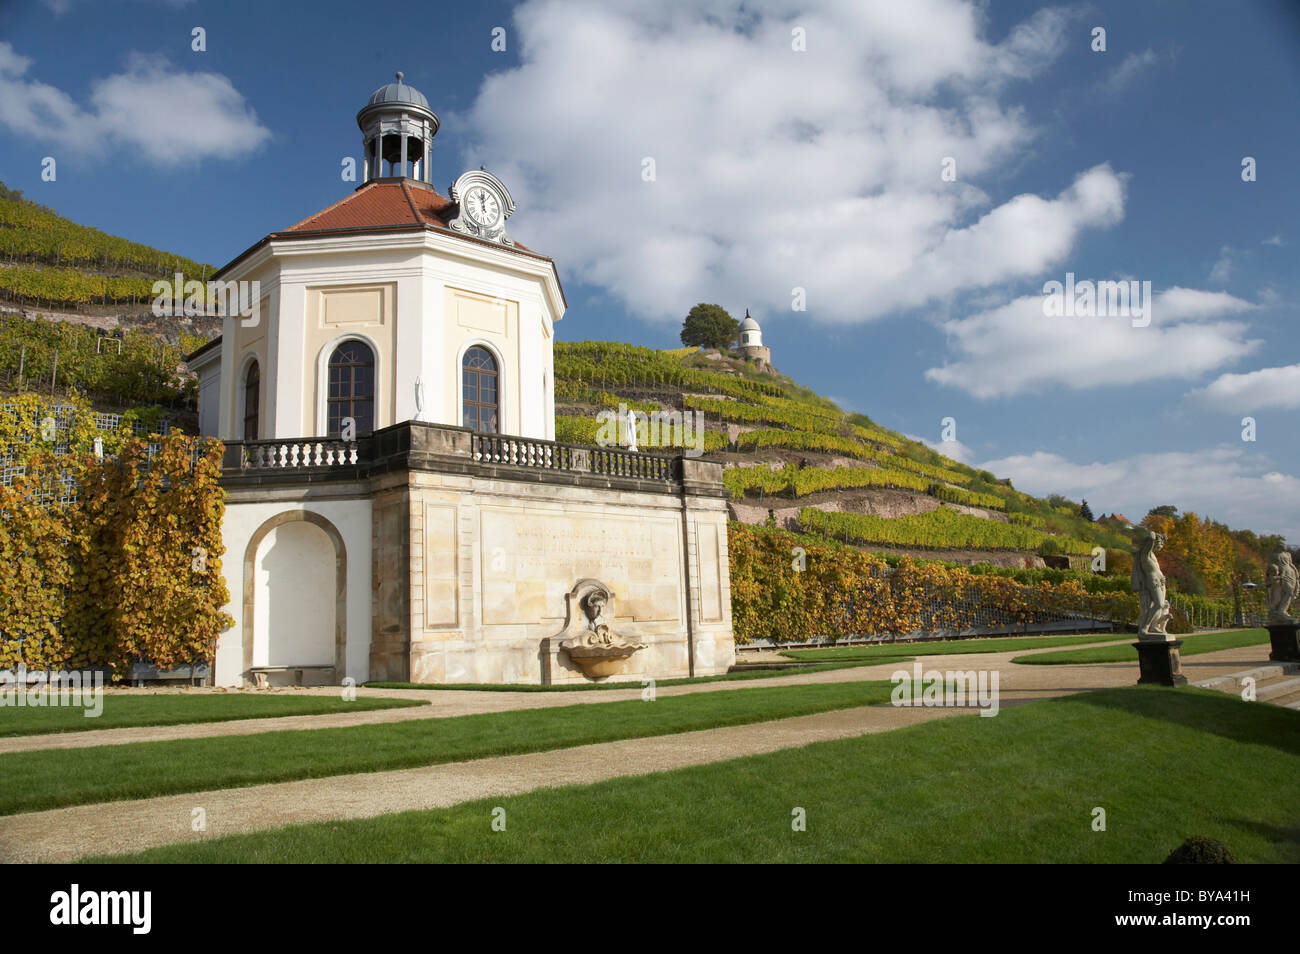 Belvedere of Wackerbarth Castle in the vineyard with Jacobstein, autumn, Radebeul, Saxony, Germany, Europe Stock Photo